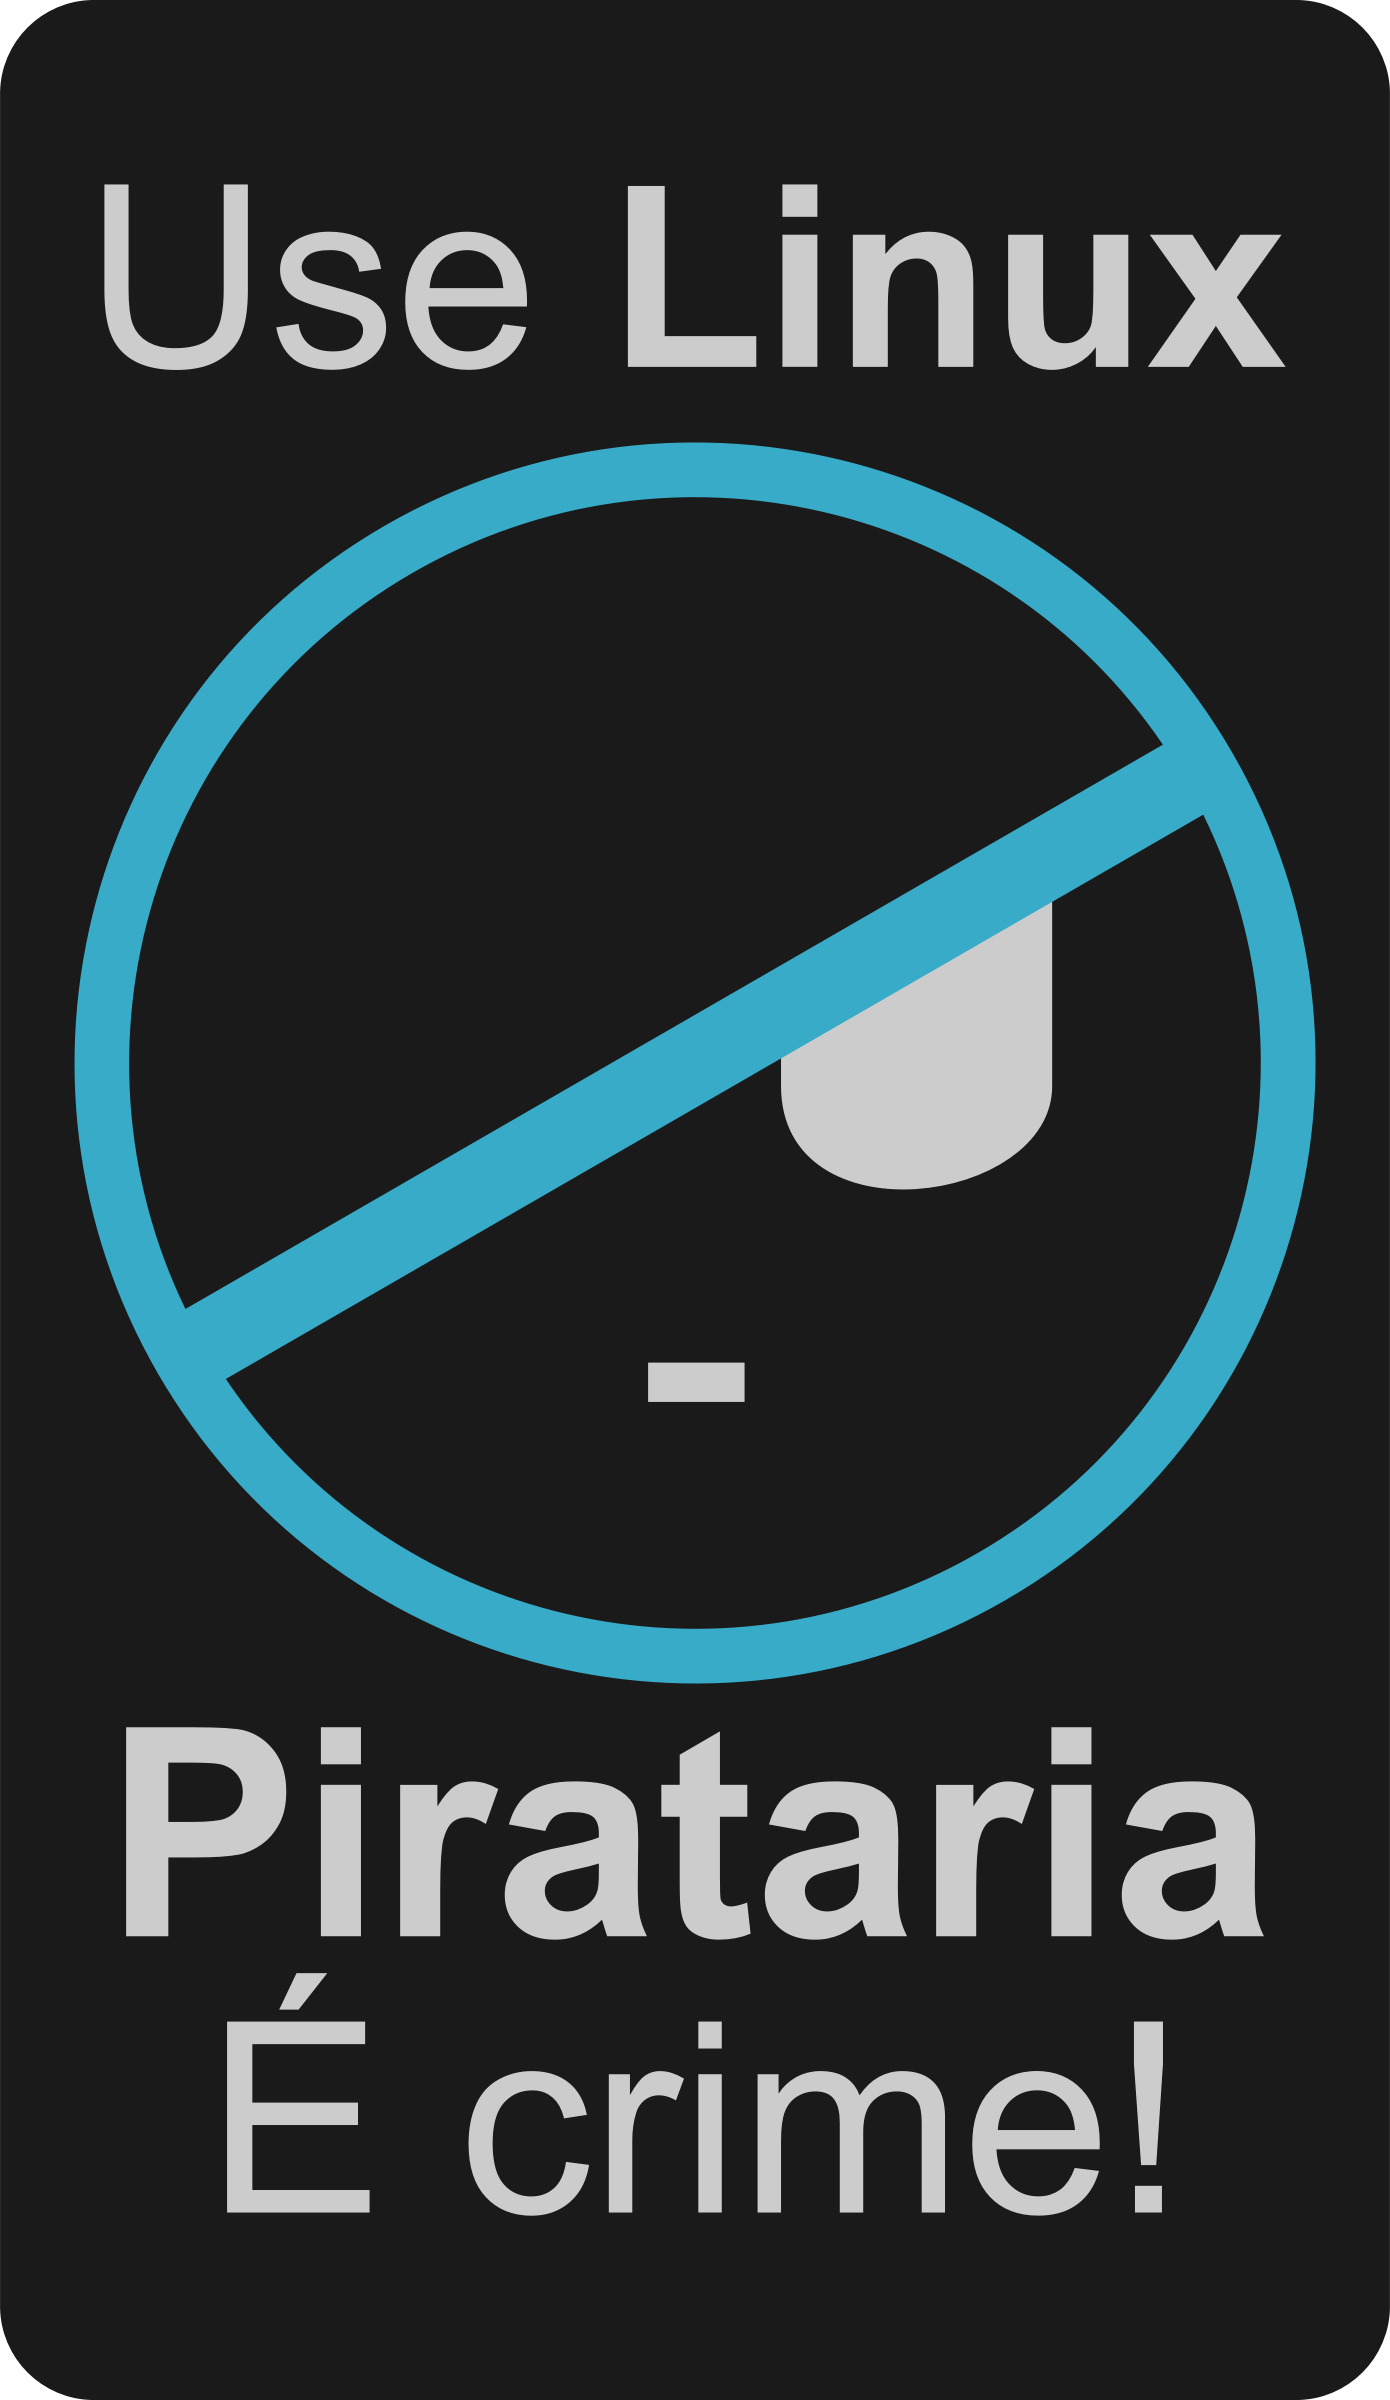 Pirataria é Crime! Use Linux by augustoschwartz